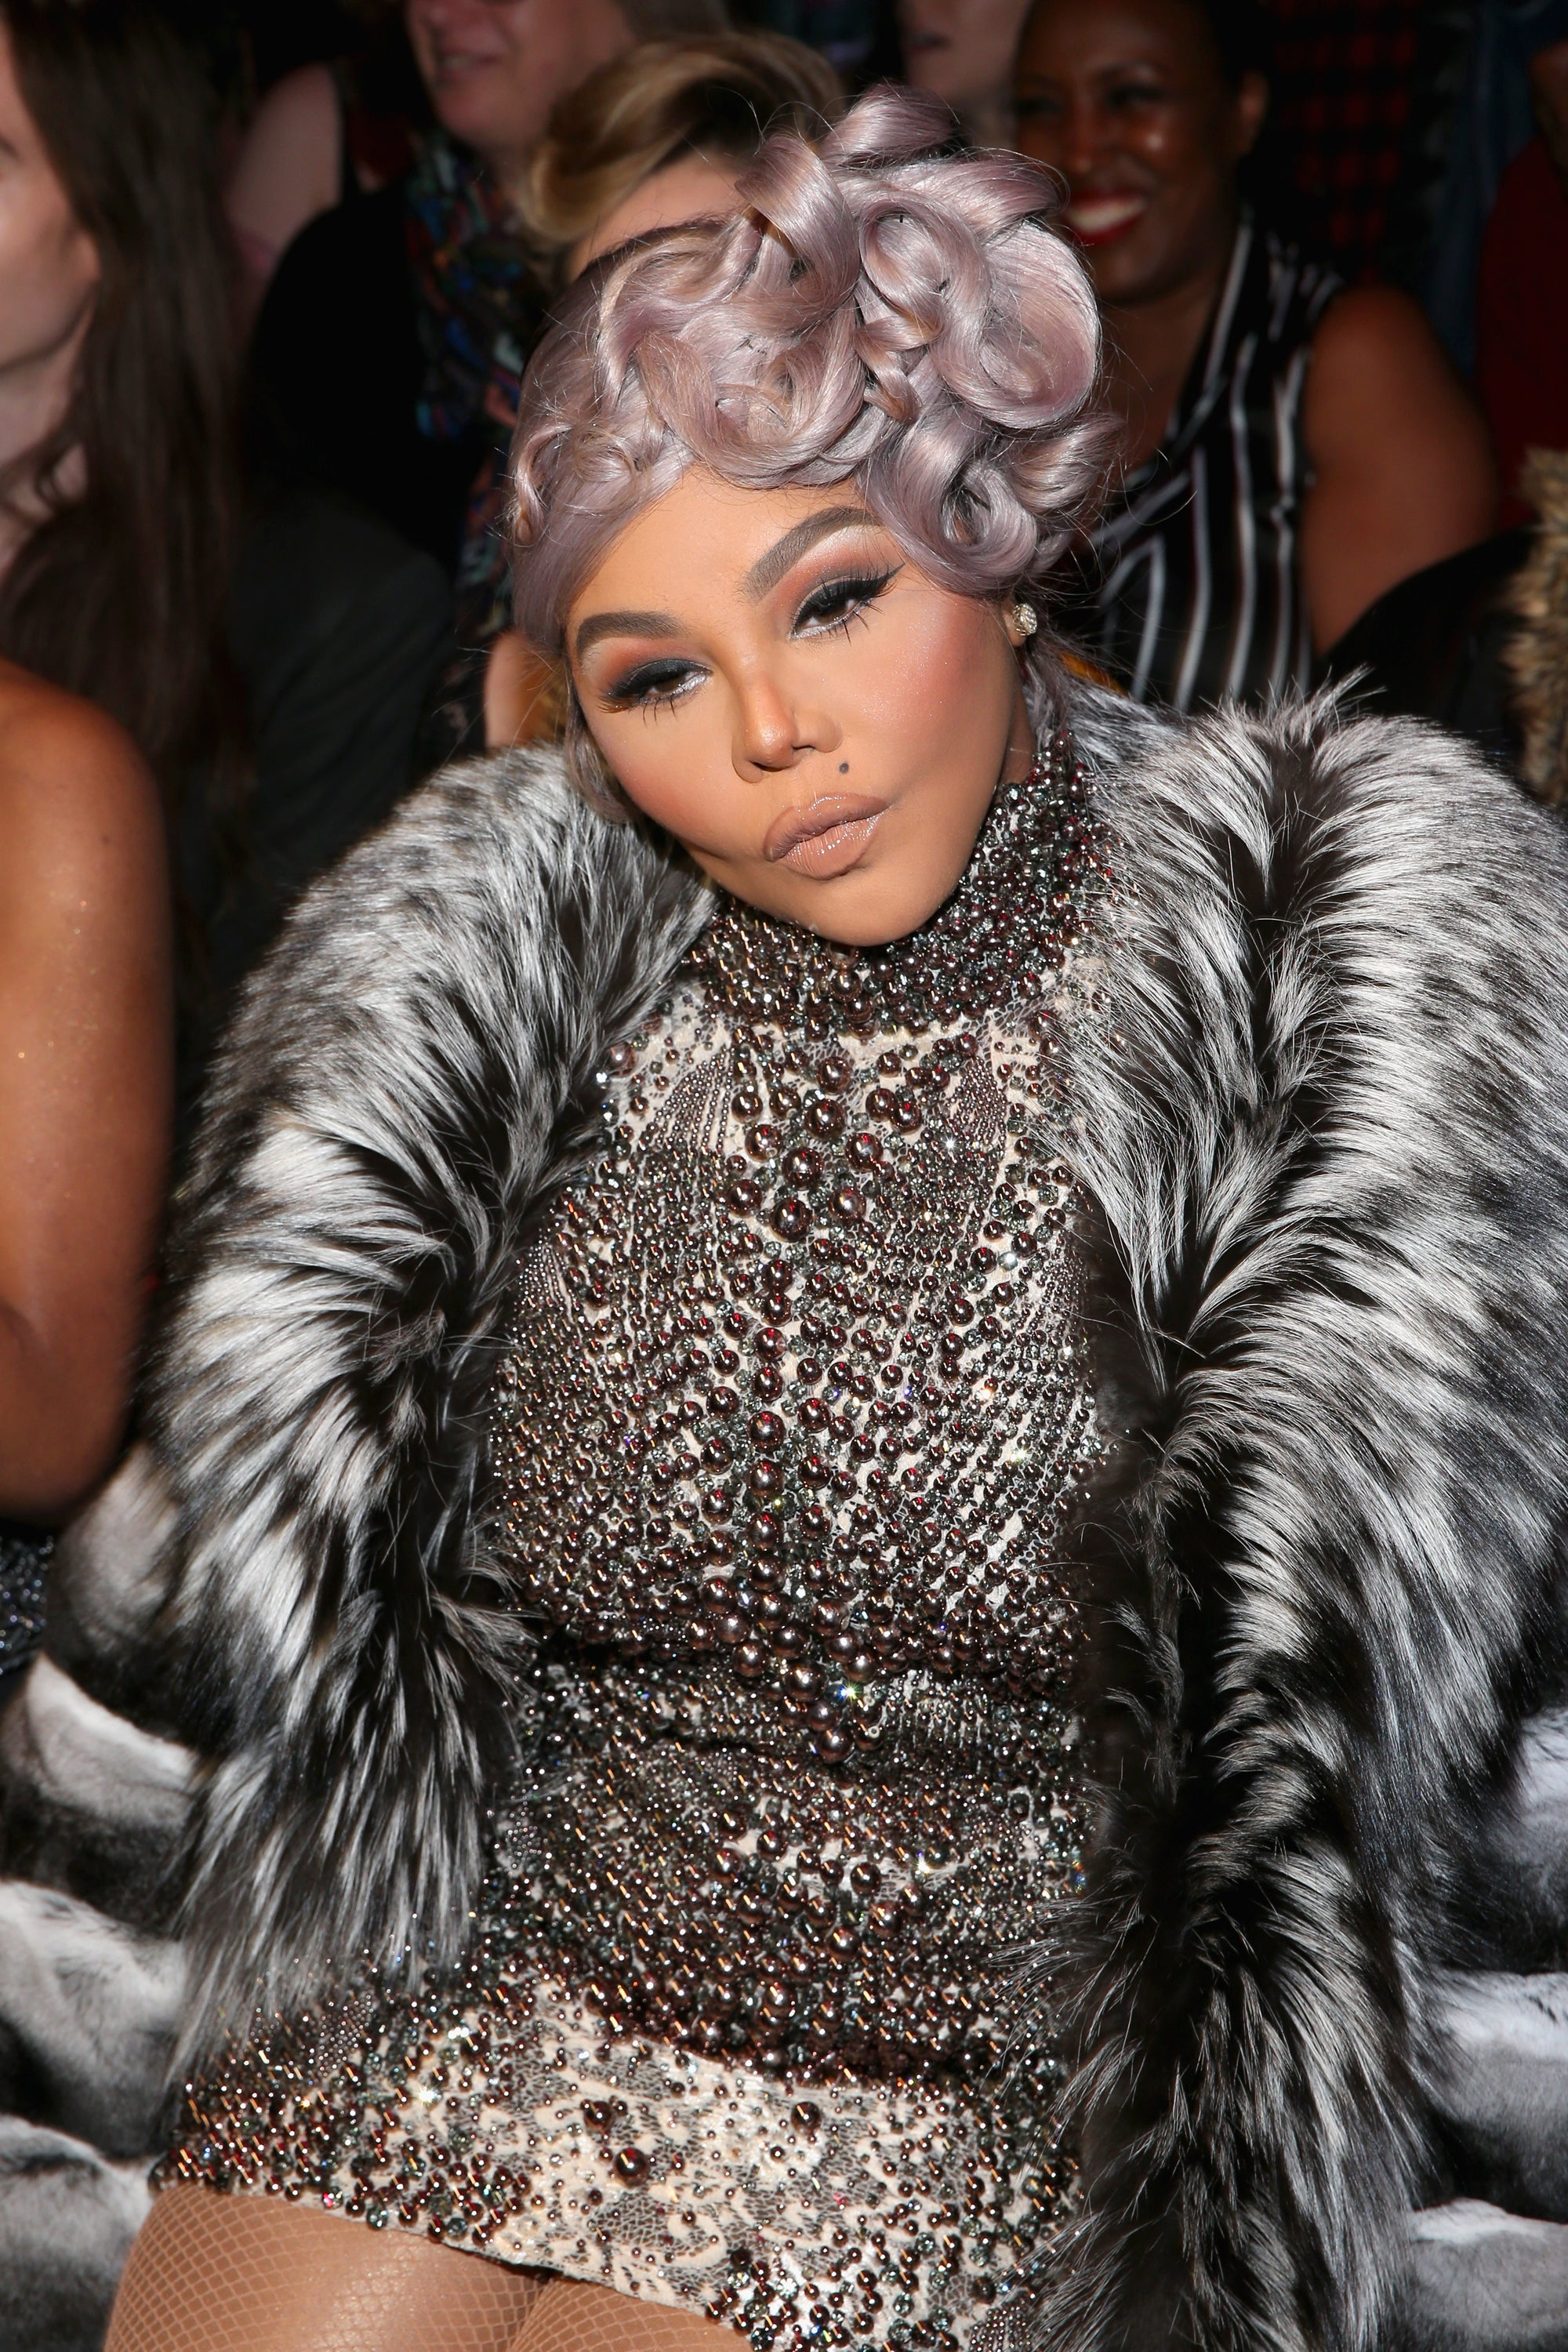 Lil Kim News, Pictures, and Videos m